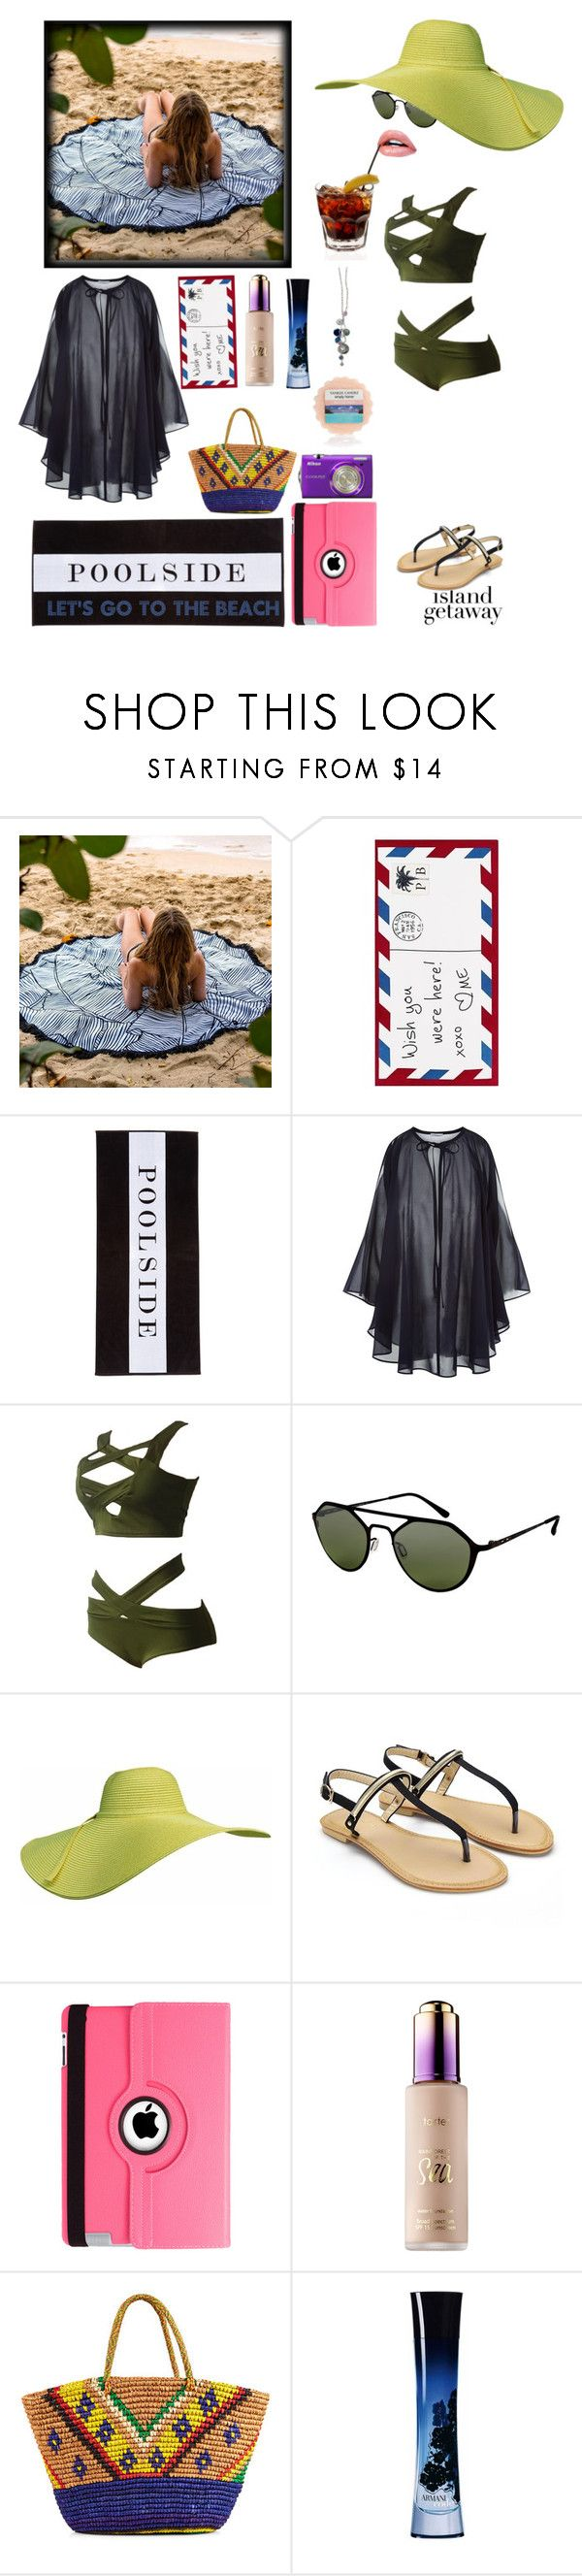 """Island 🌴 Getaway"" by yemmy-made ❤ liked on Polyvore featuring Pottery Barn, Chance, Italia Independent, Natico, tarte, Nikon, Sensi Studio, Giorgio Armani, Yankee Candle and Lia Sophia"